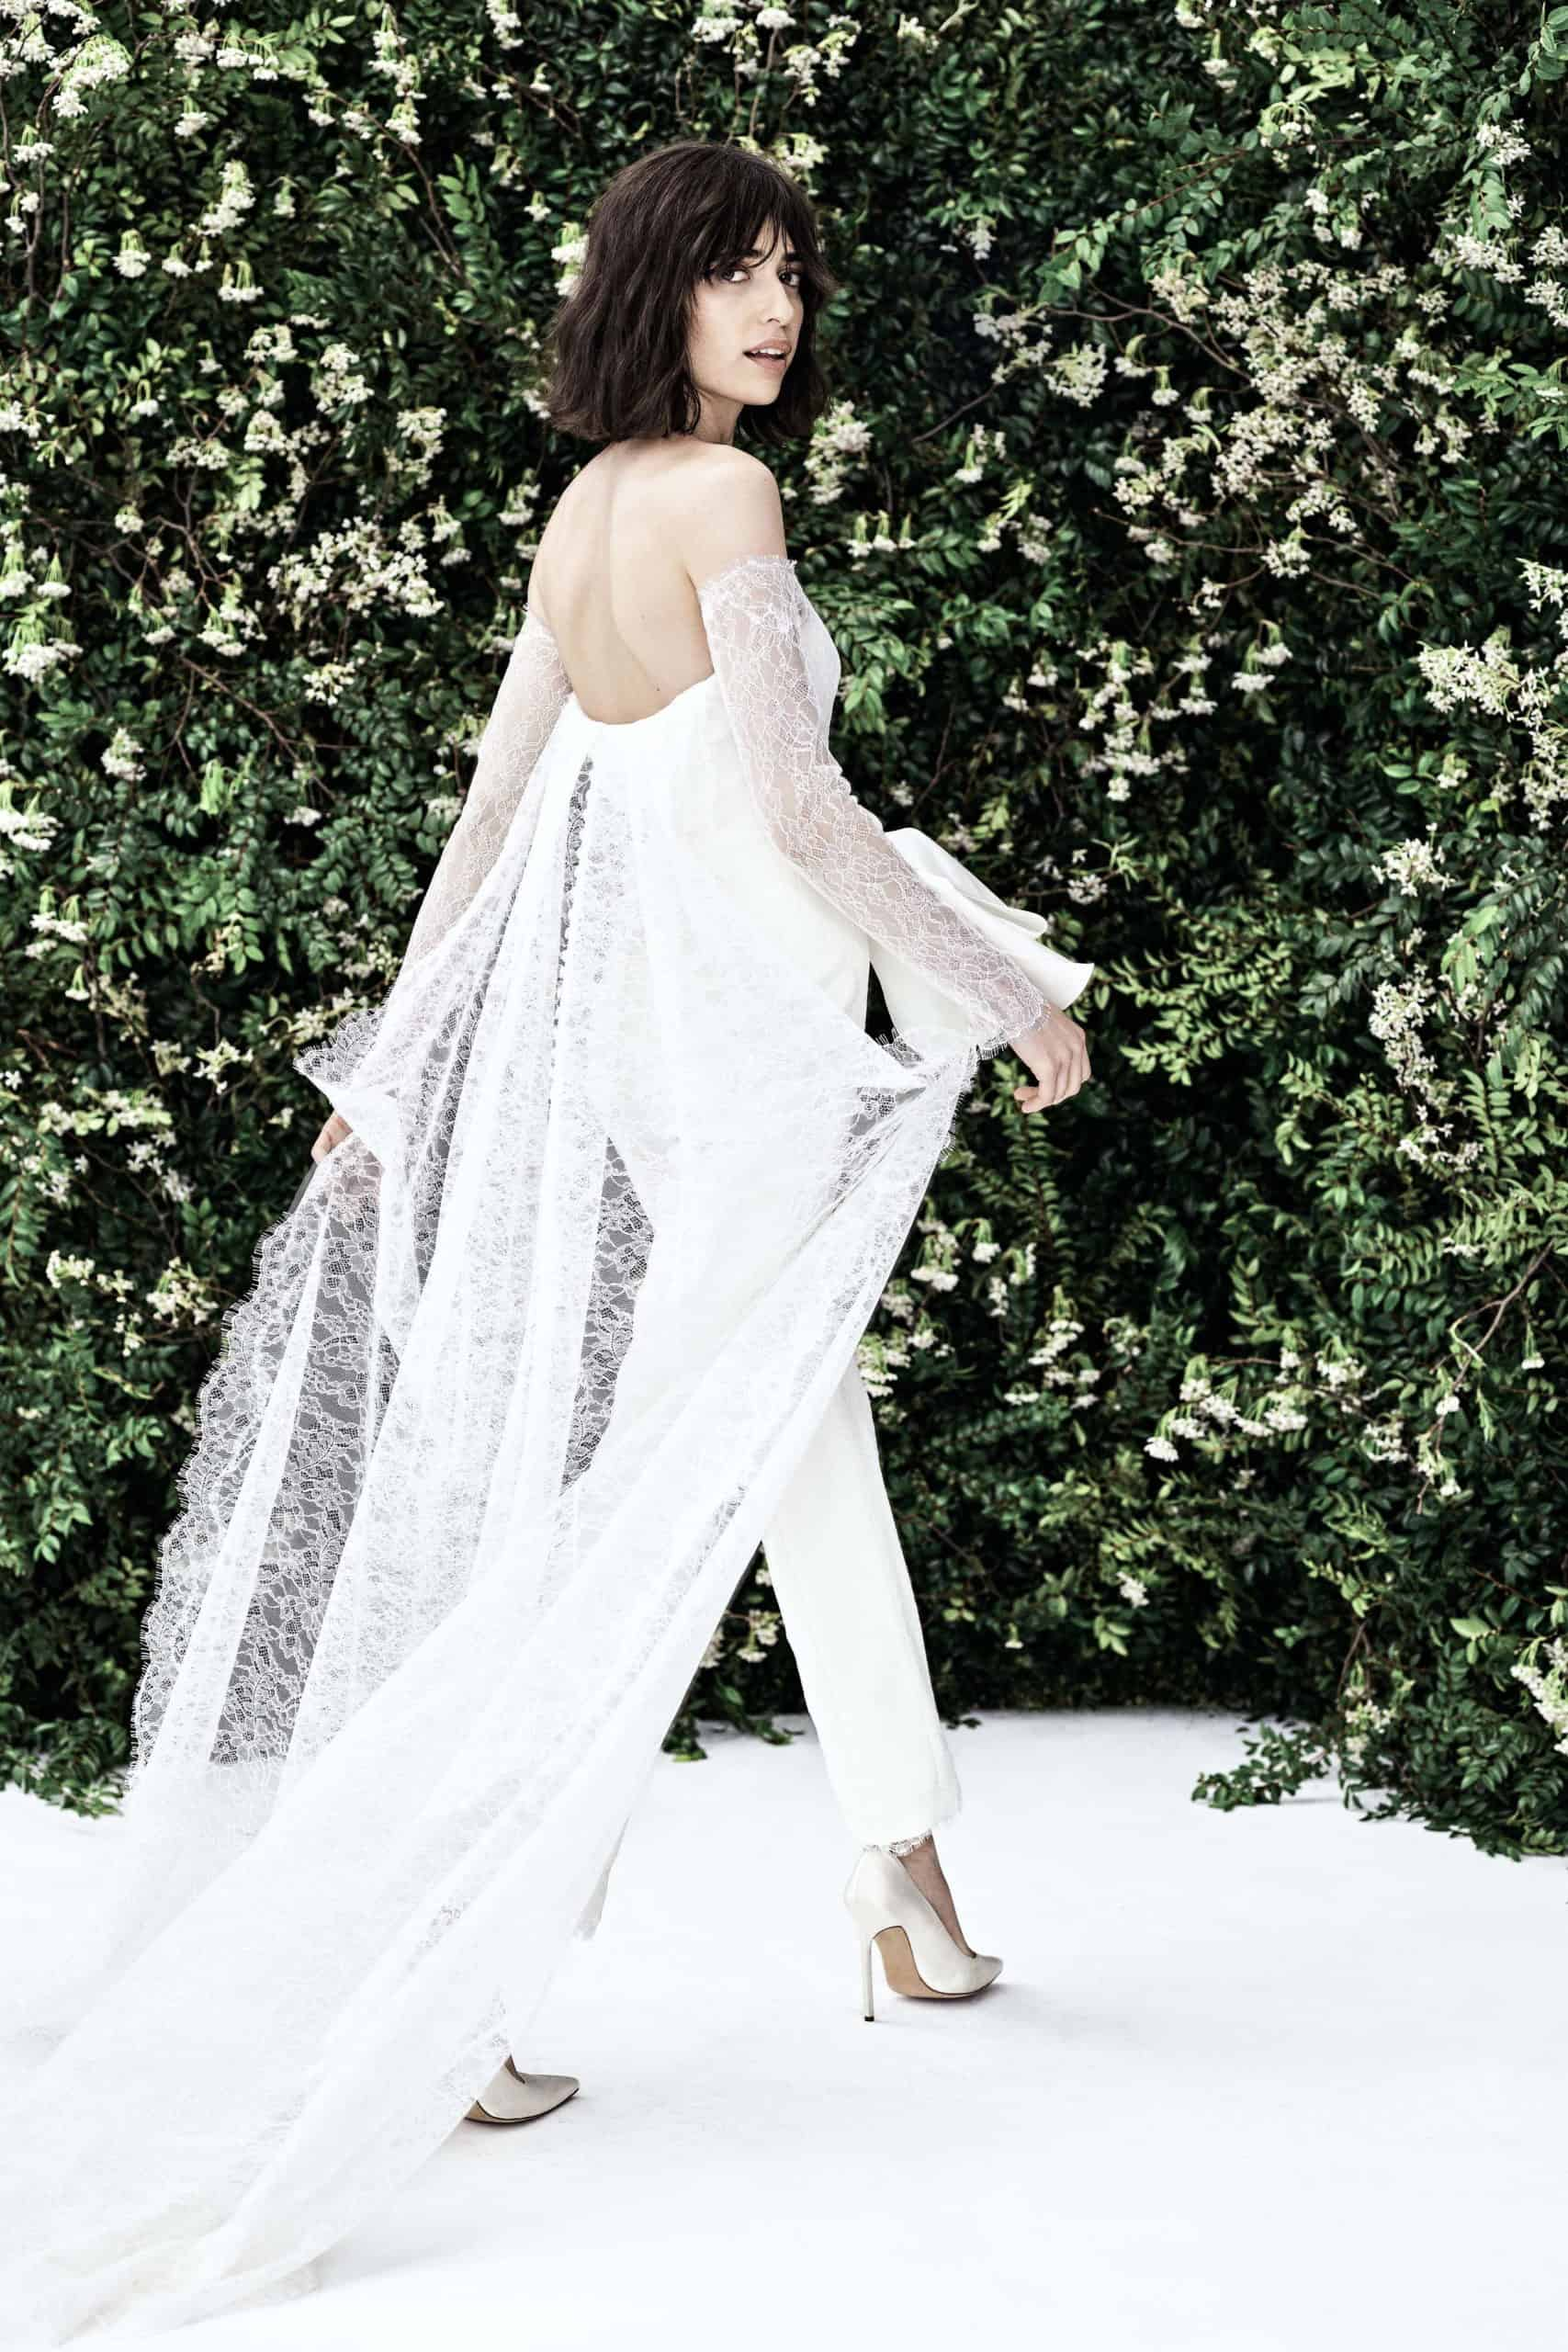 jumpsuit wedding dress with lace sleeves and tail by Carolina Herrera